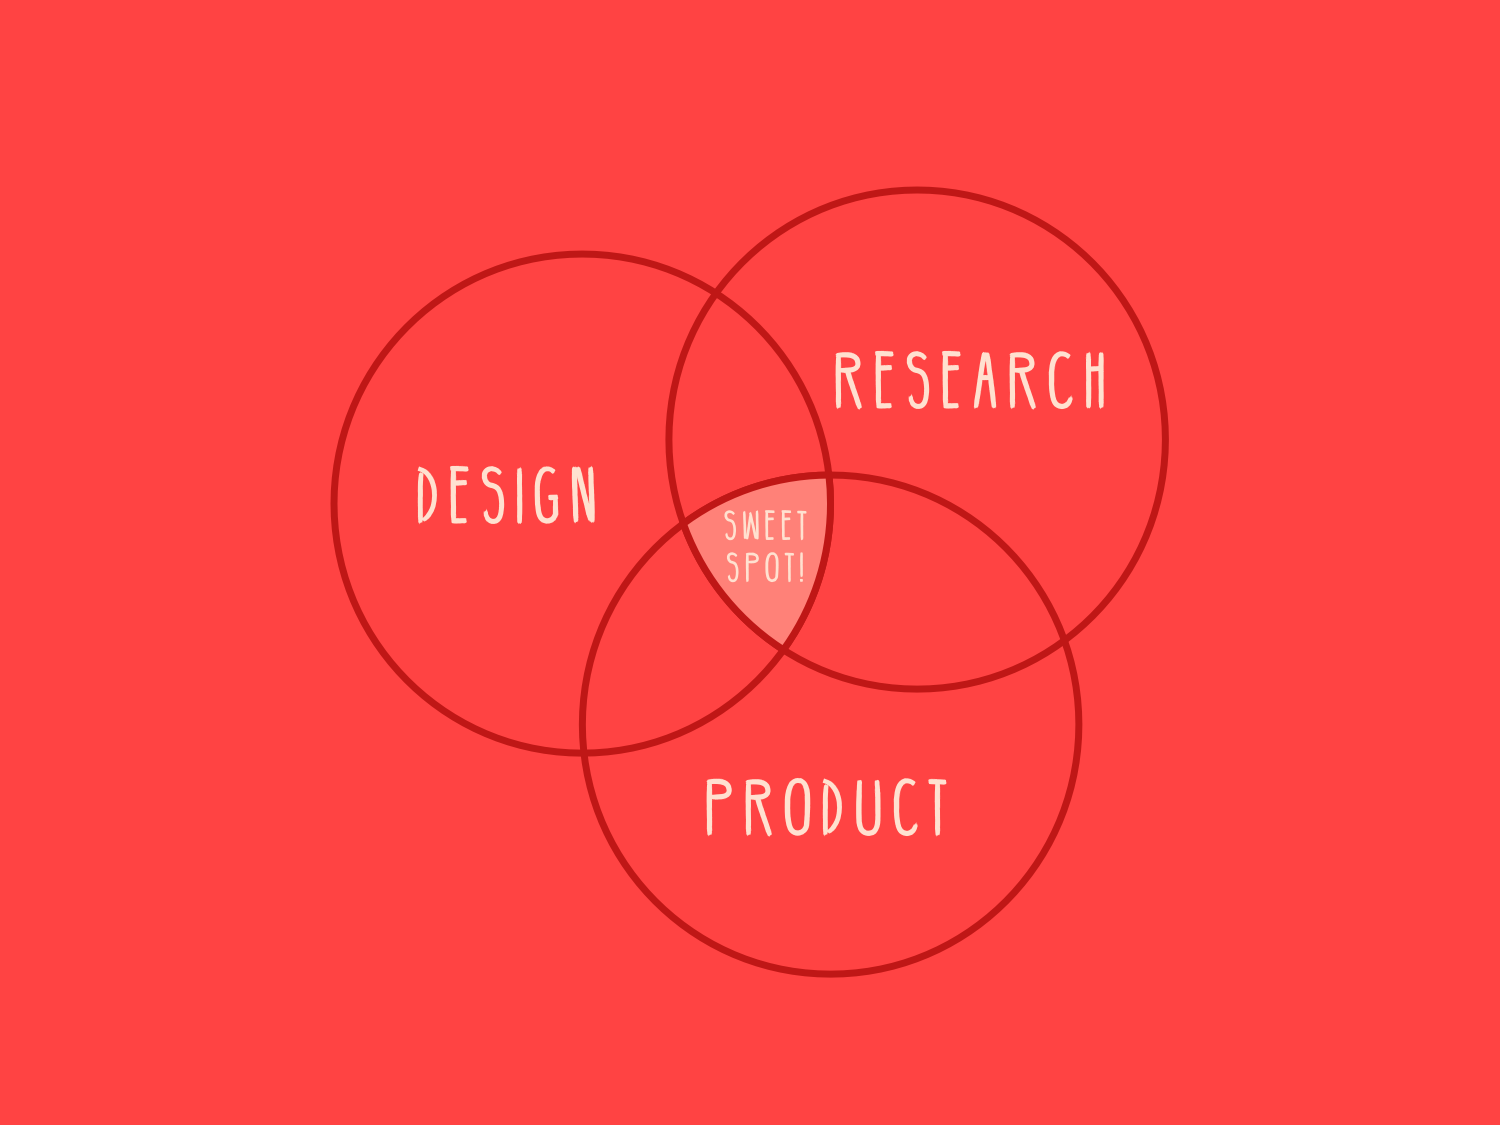 I thrive in roles where design, research and product intersect.